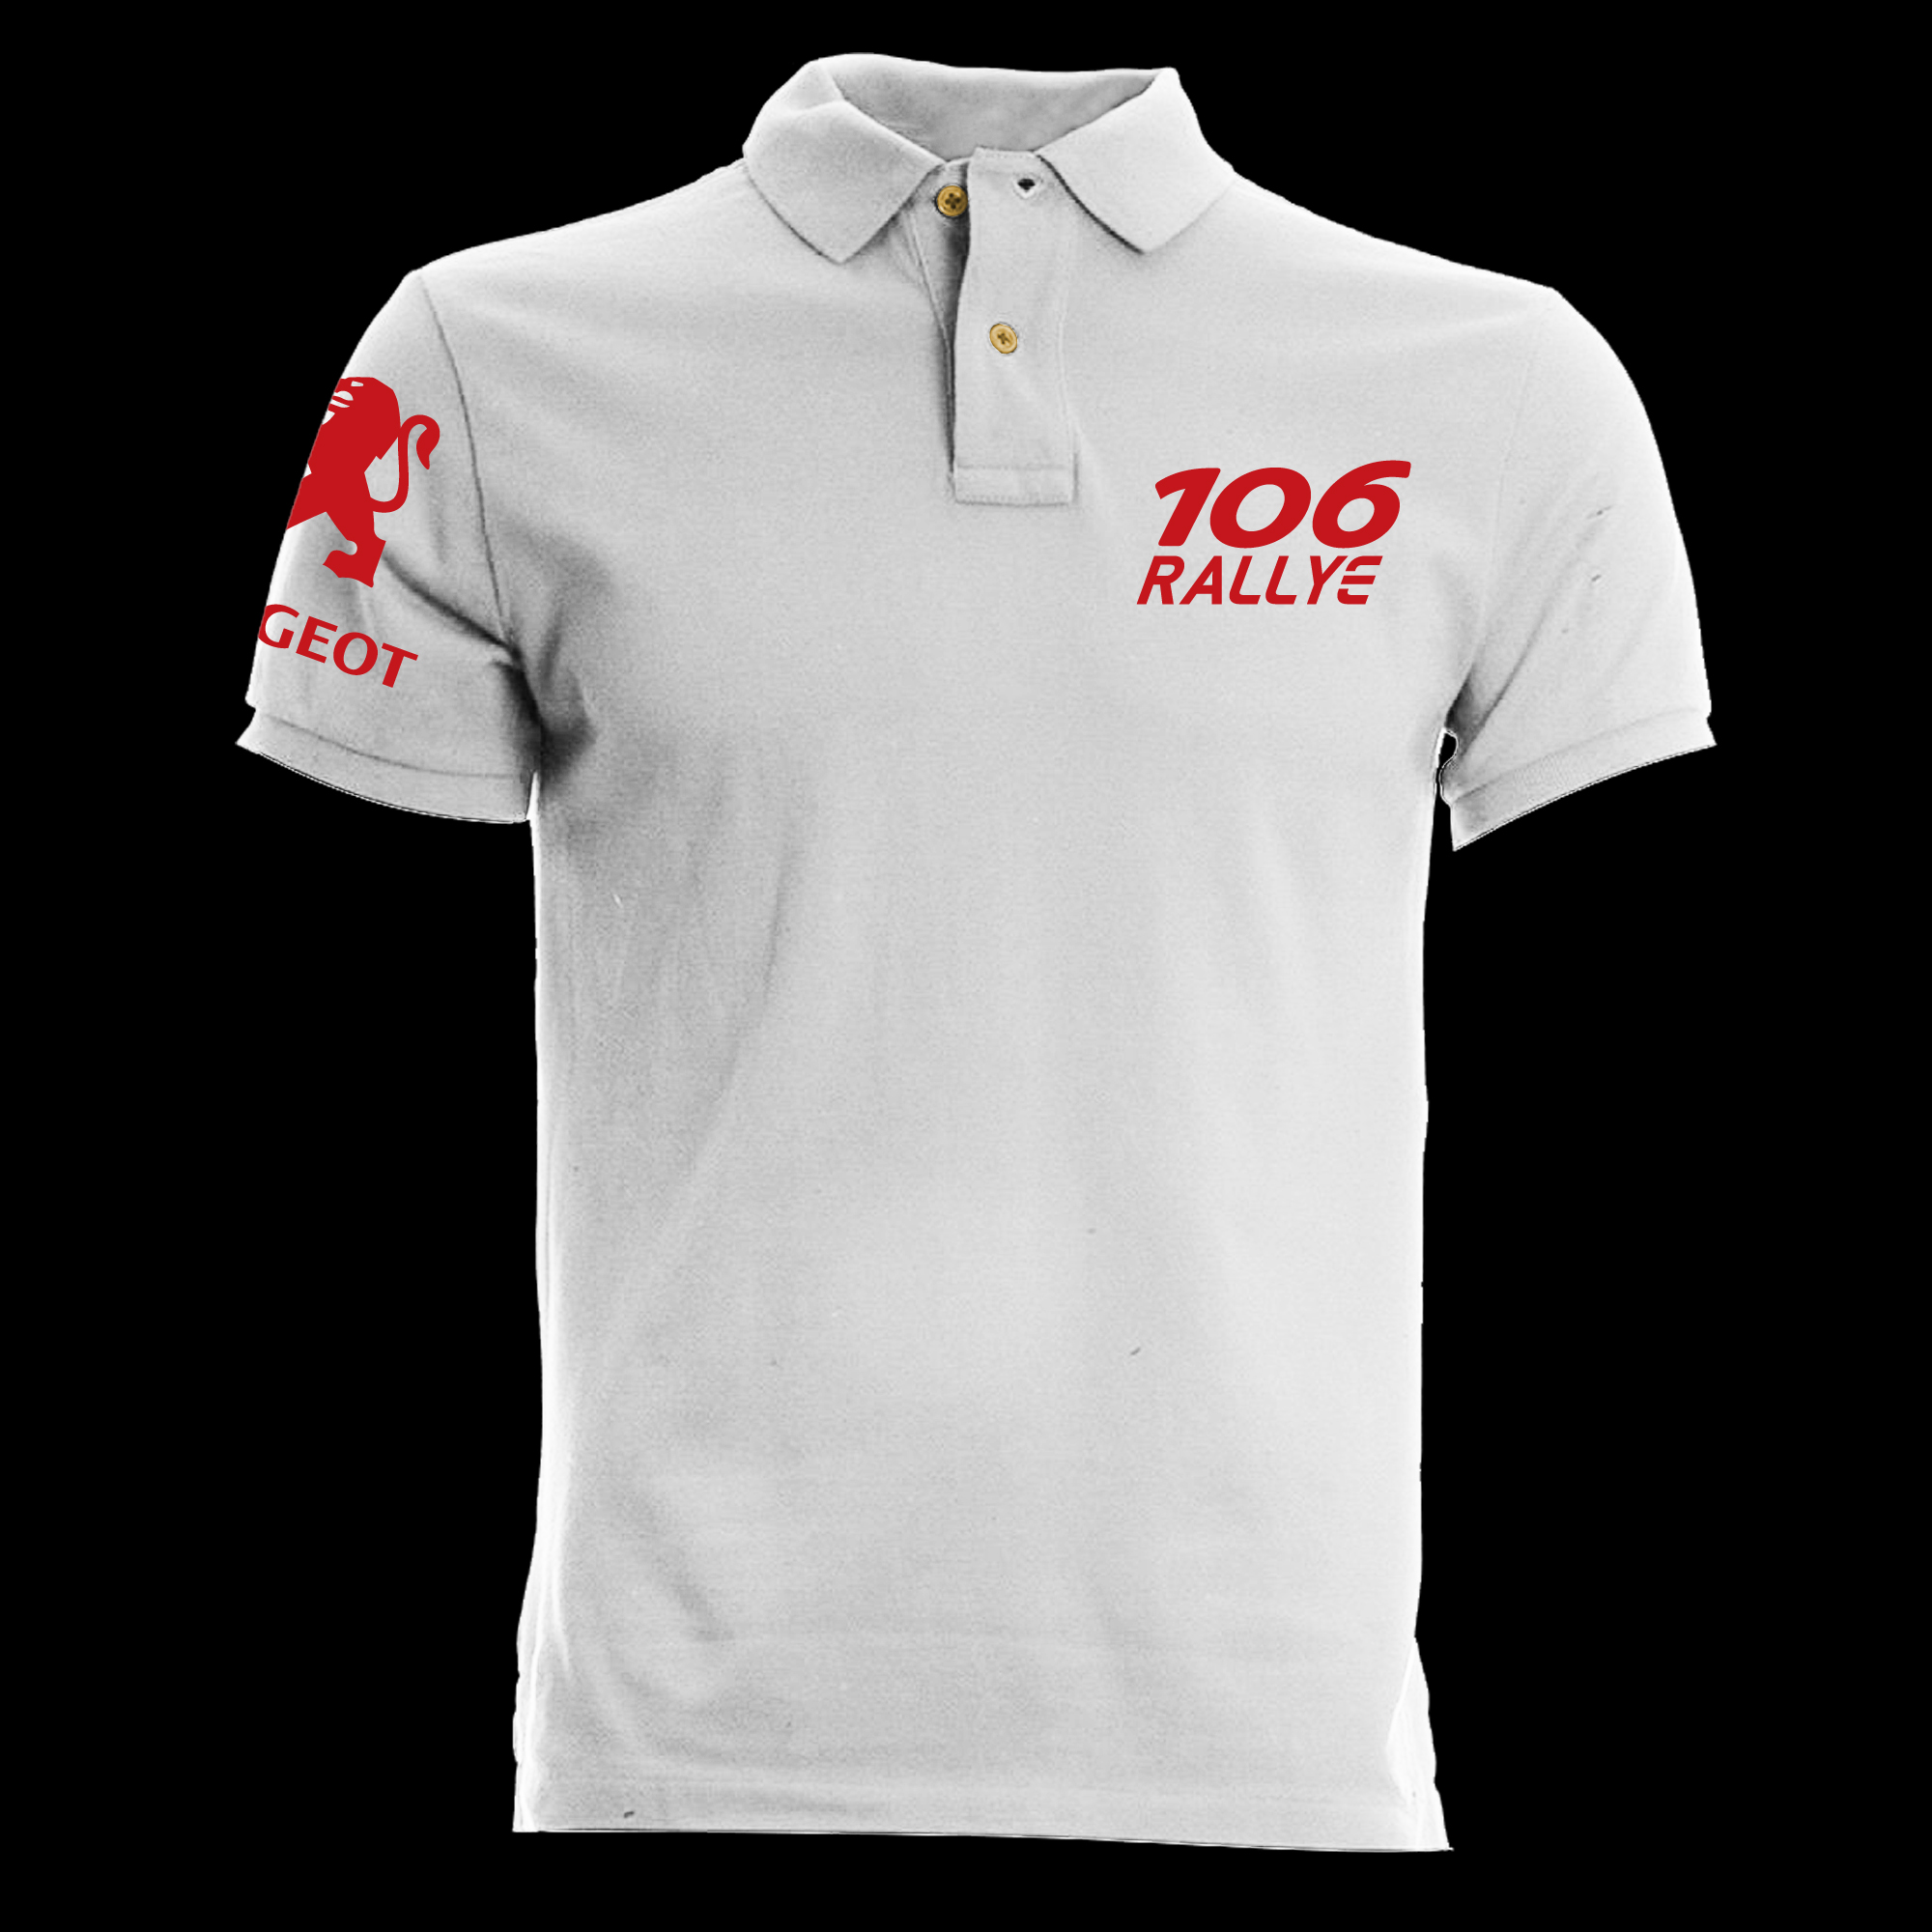 t shirt polo white peugeot 106 rallye france car old motor fashion ebay. Black Bedroom Furniture Sets. Home Design Ideas